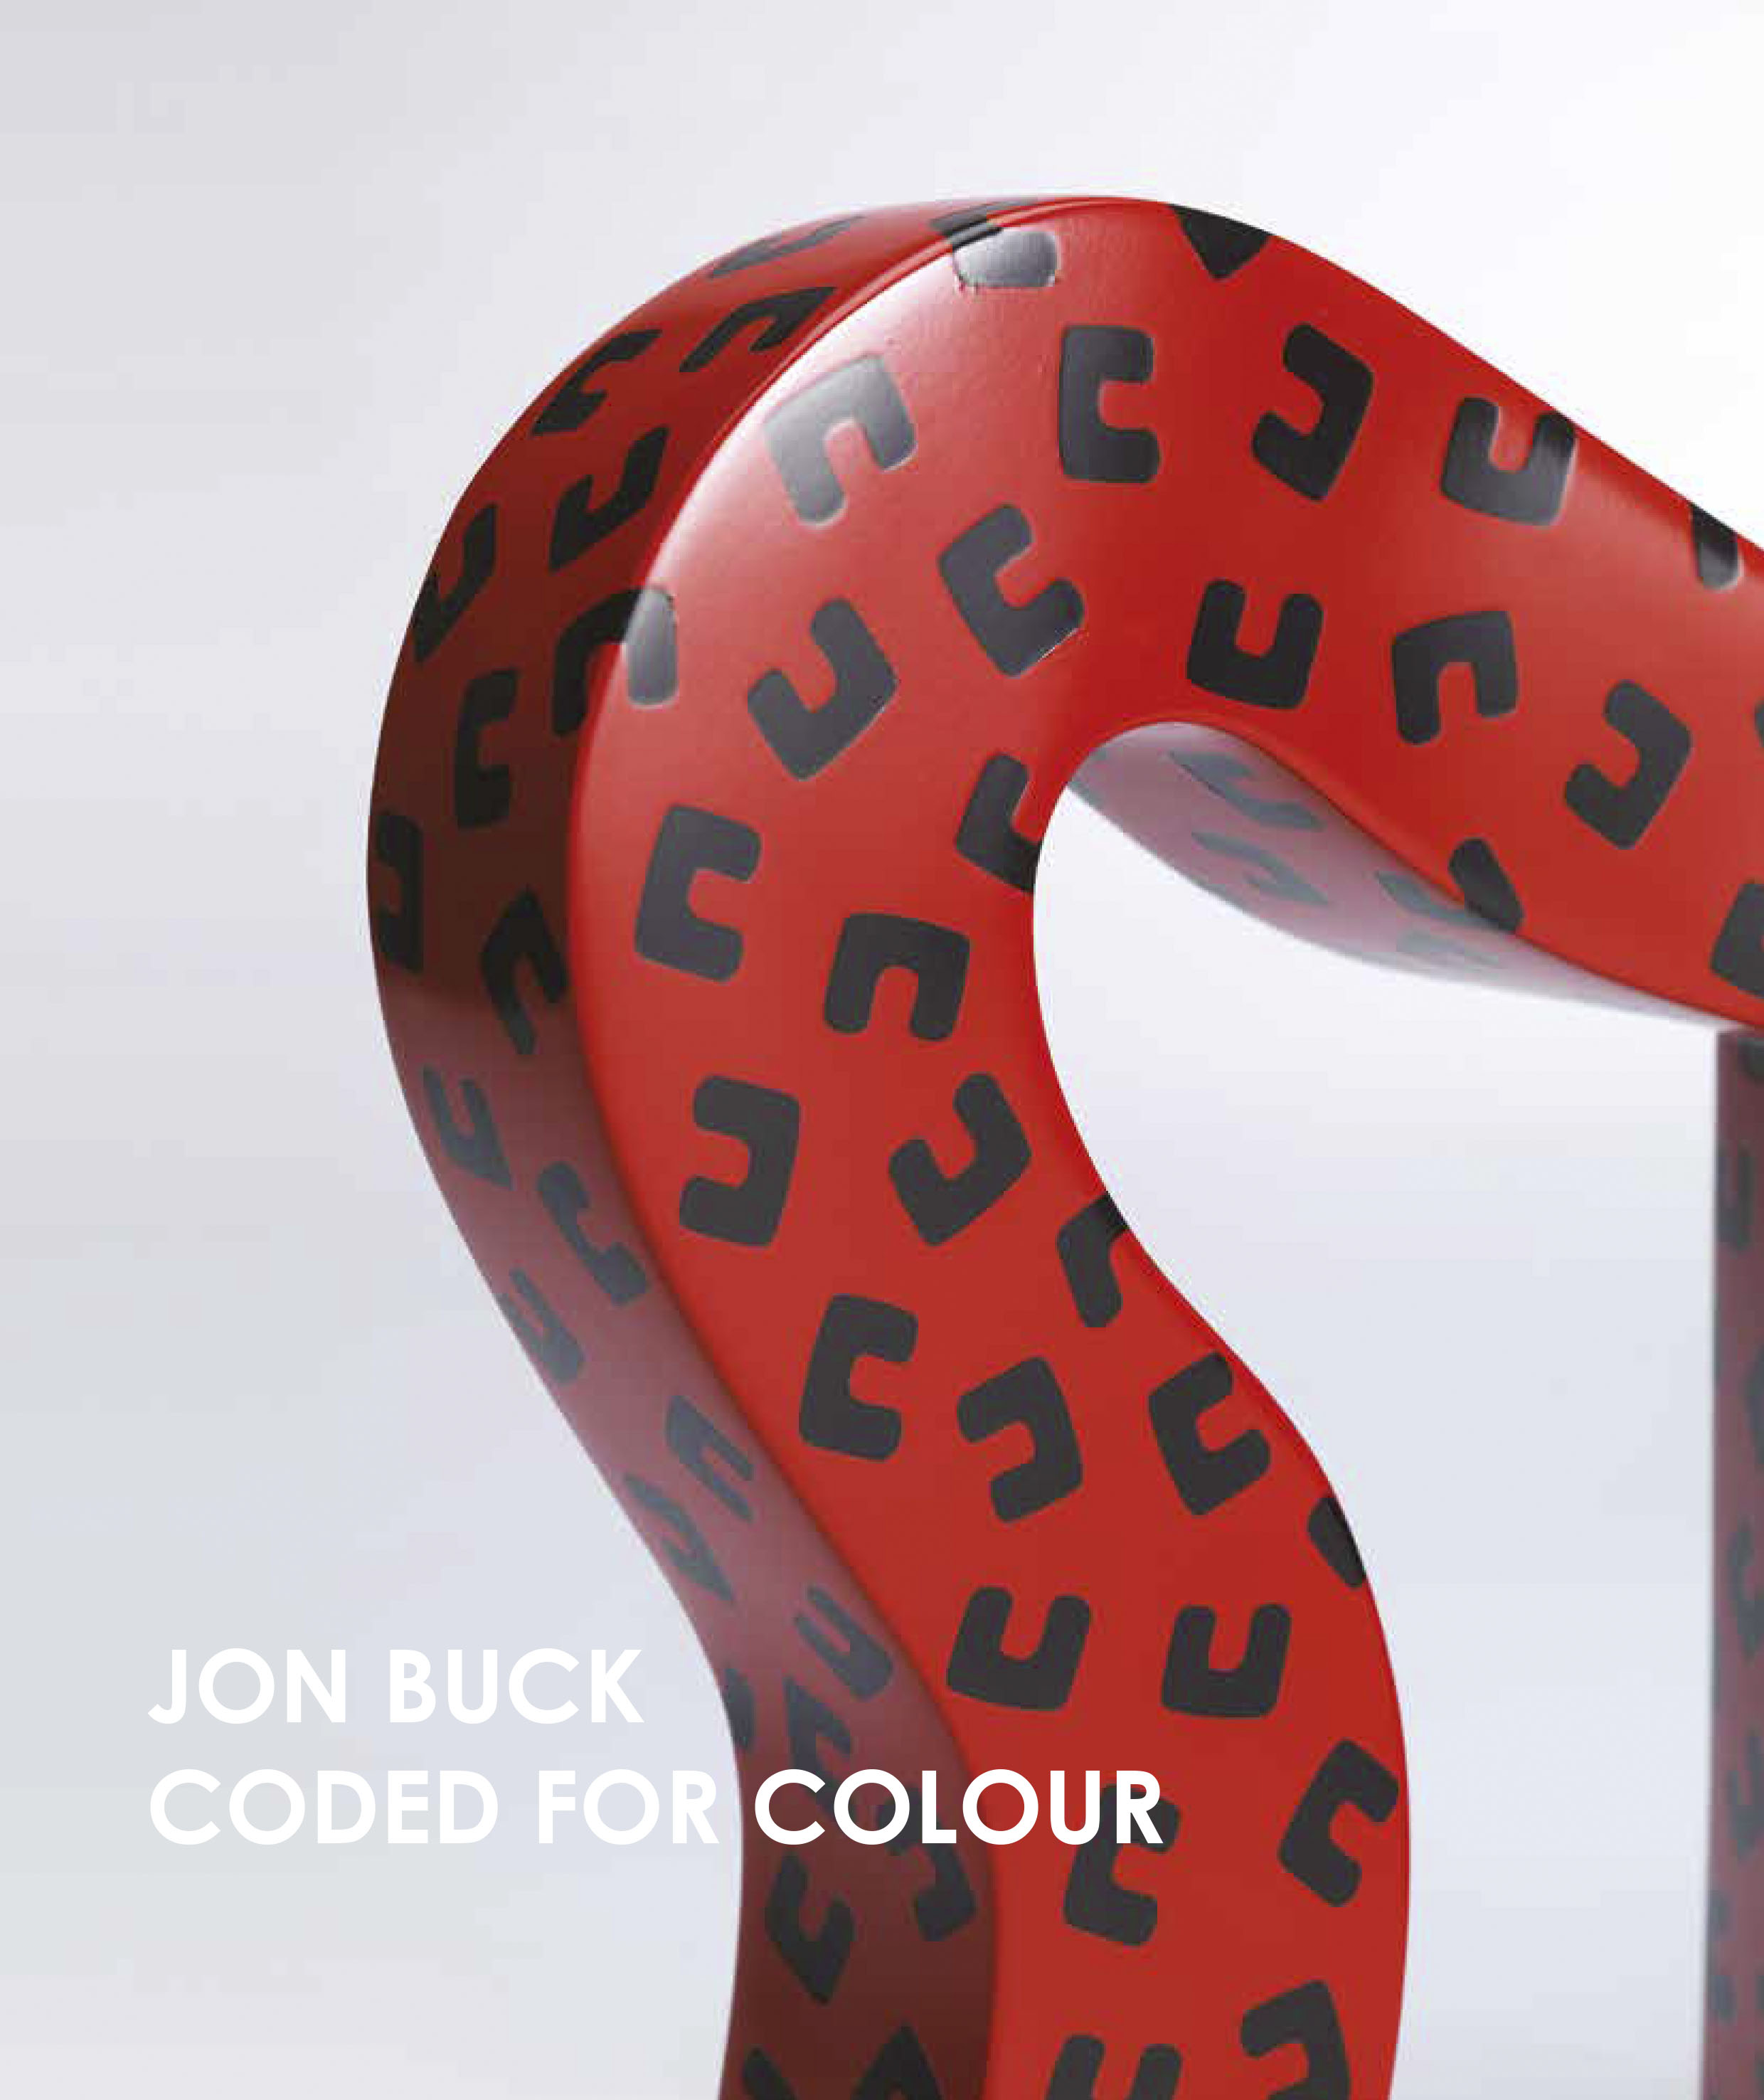 Jon Buck, Coded for Colour Book Cover